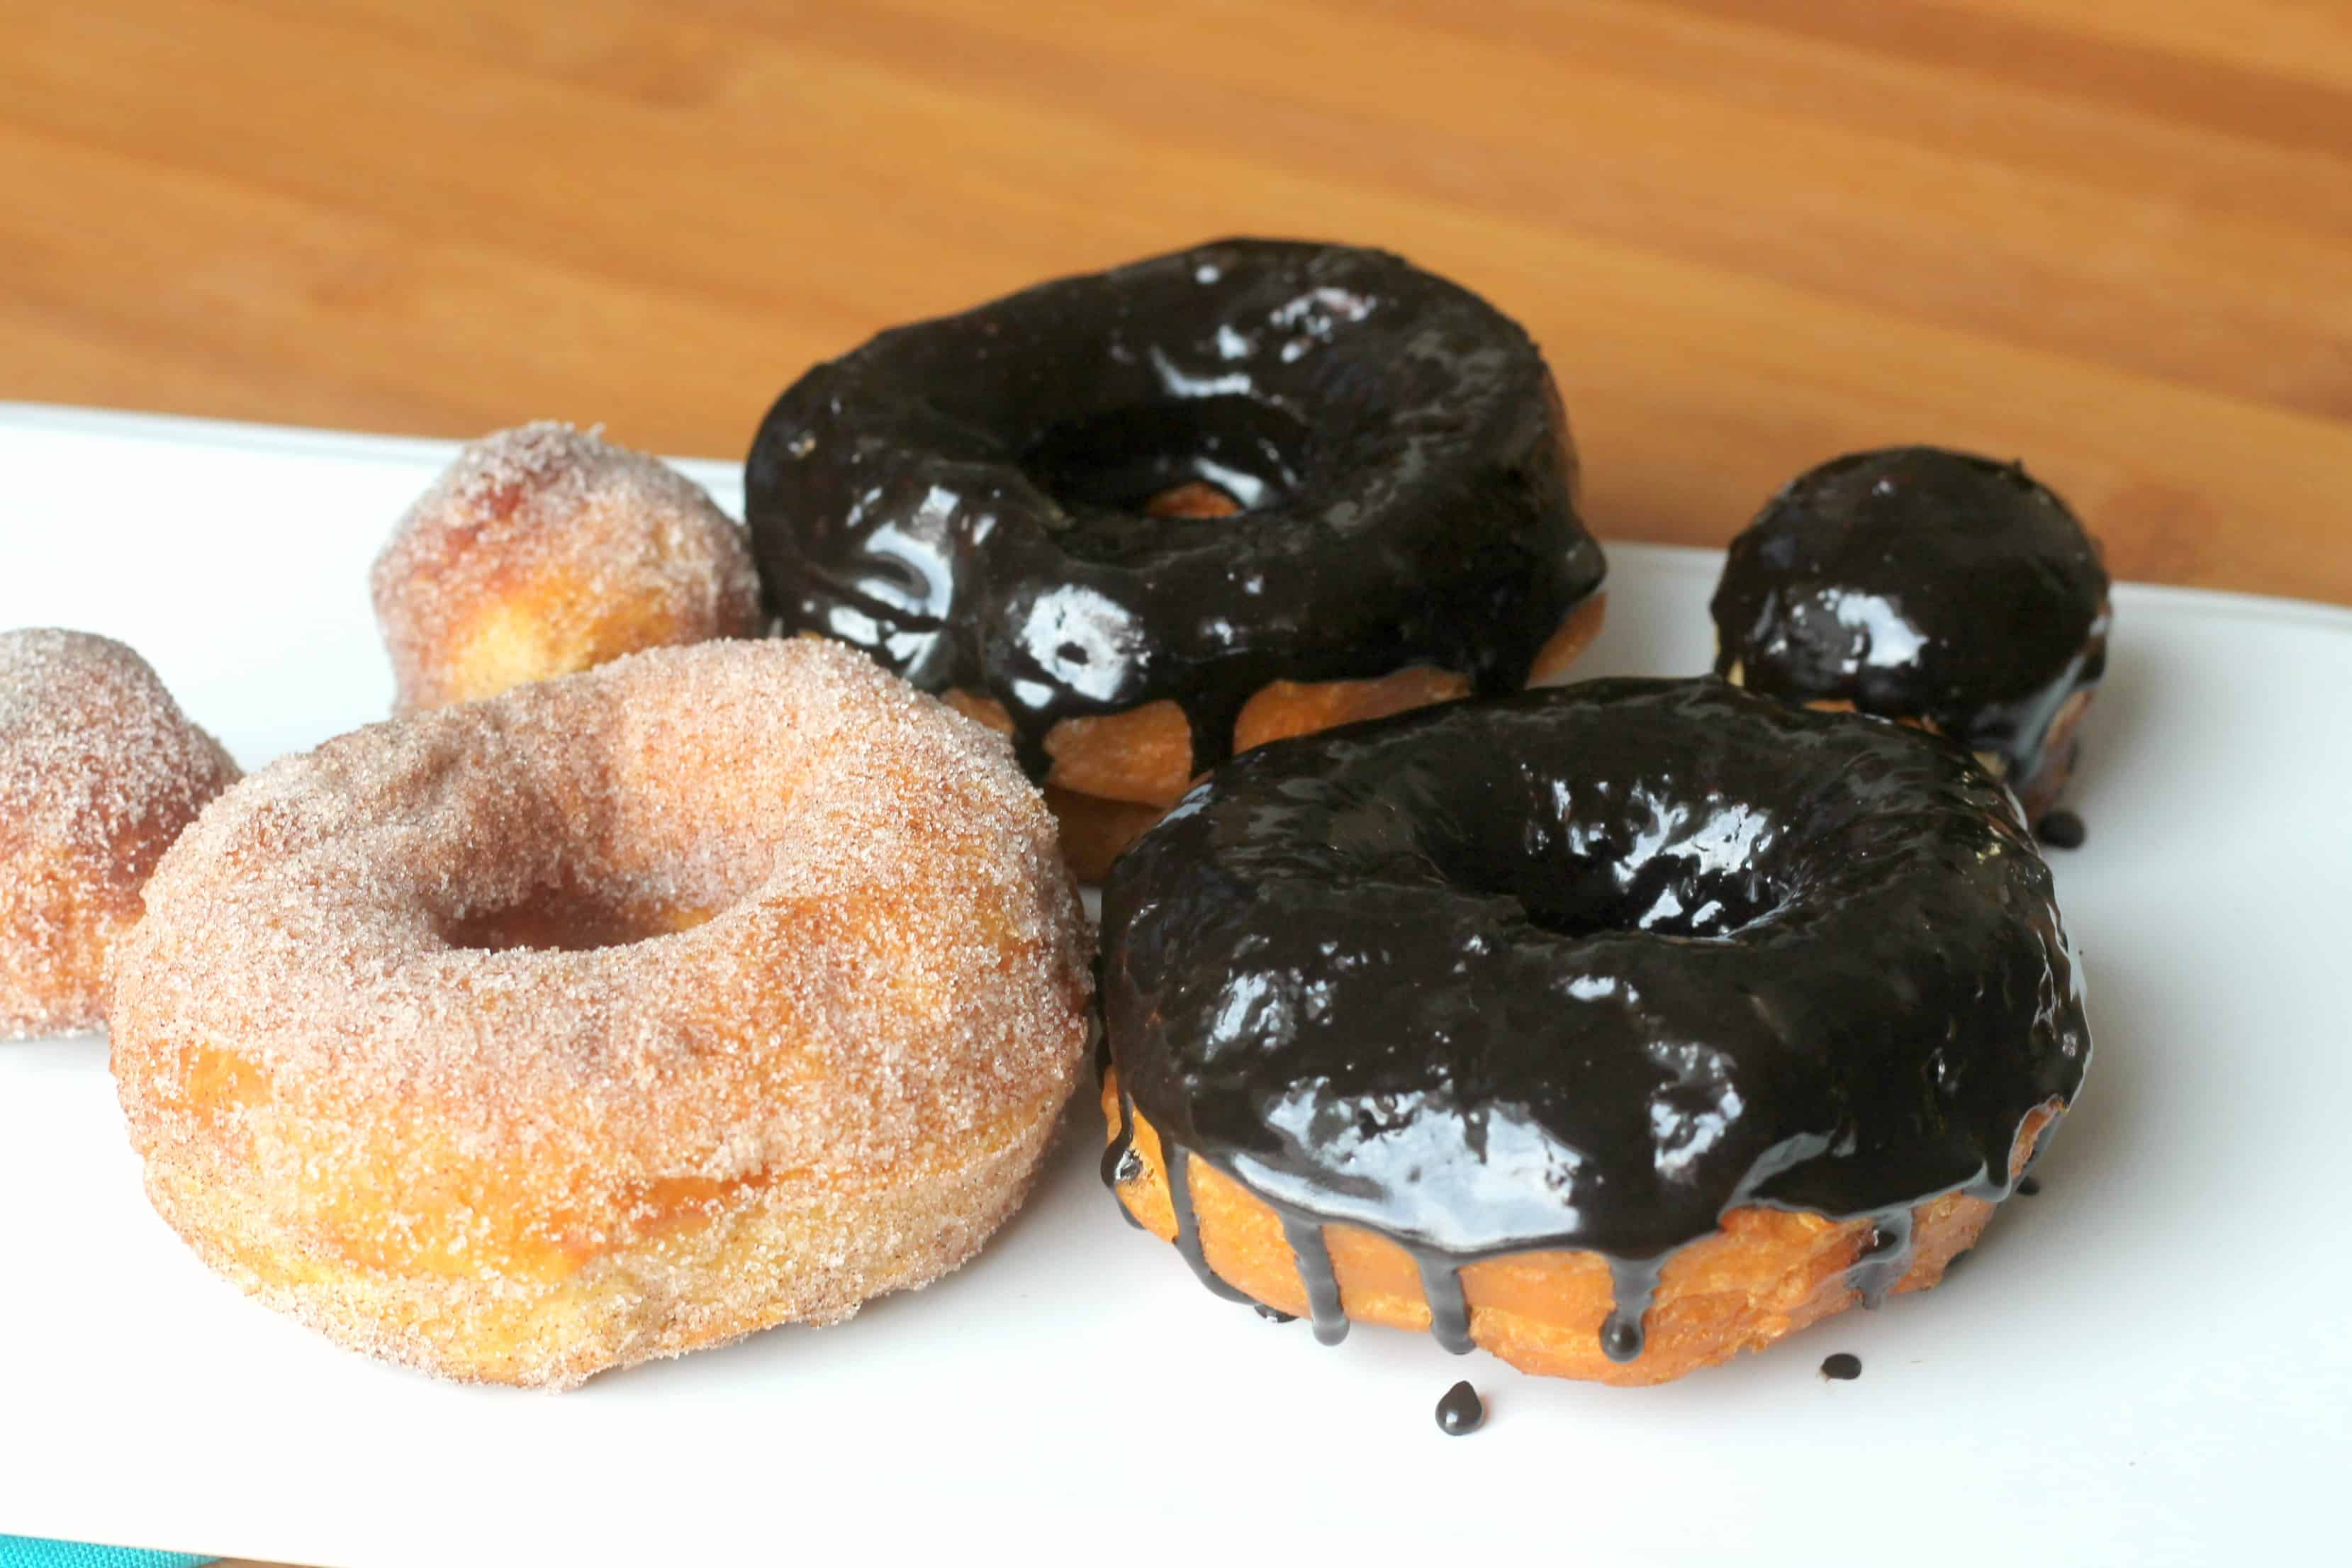 Biscuit donuts with cinnamon sugar and chocolate glaze